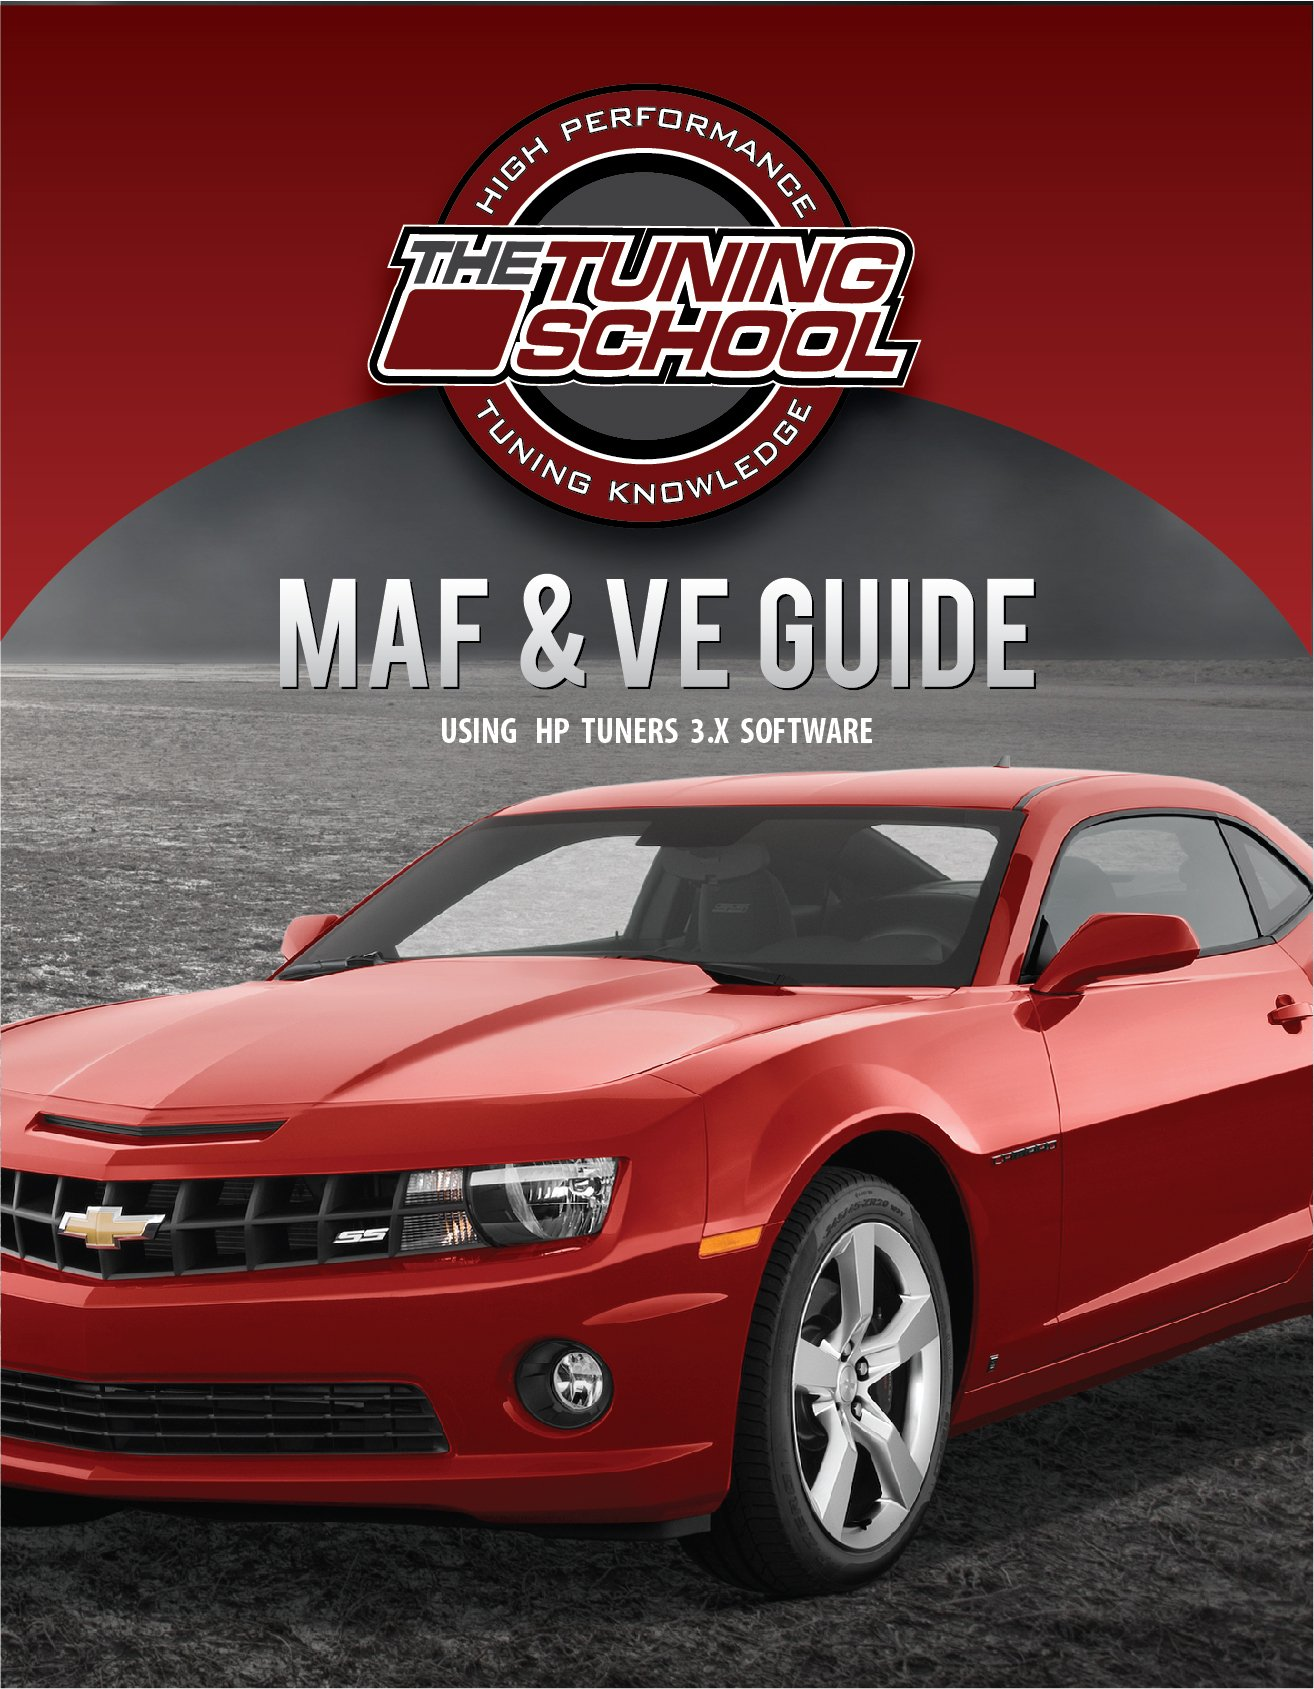 Beginning GM Tuning using HP Tuners Software: The Tuning